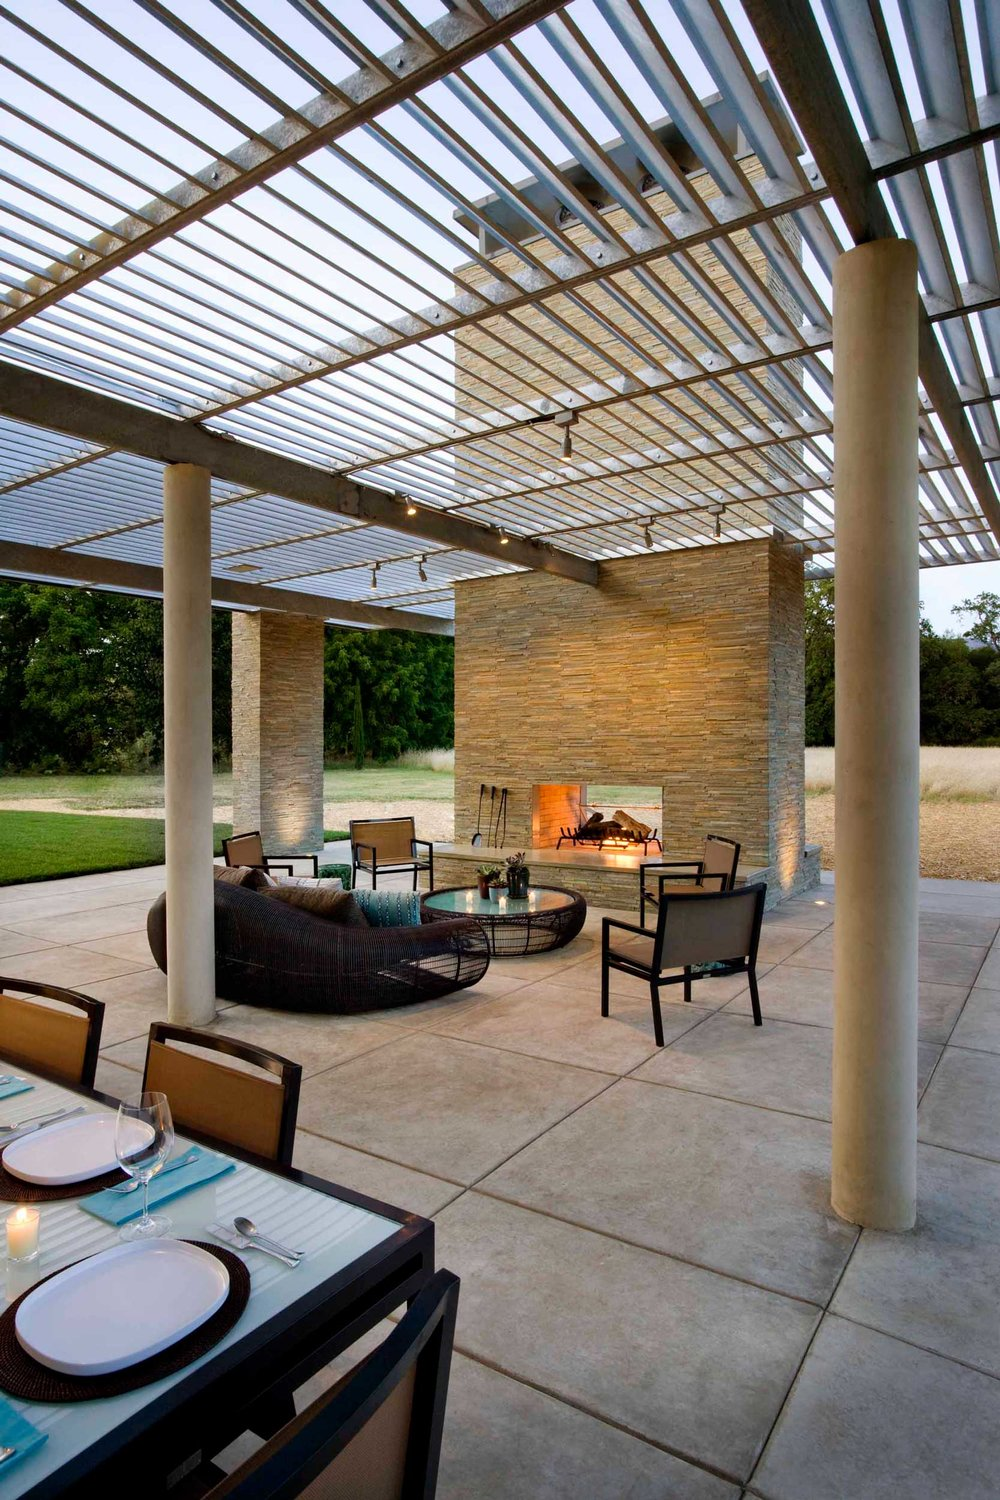 22-Poolhouse-Screen-1.jpg